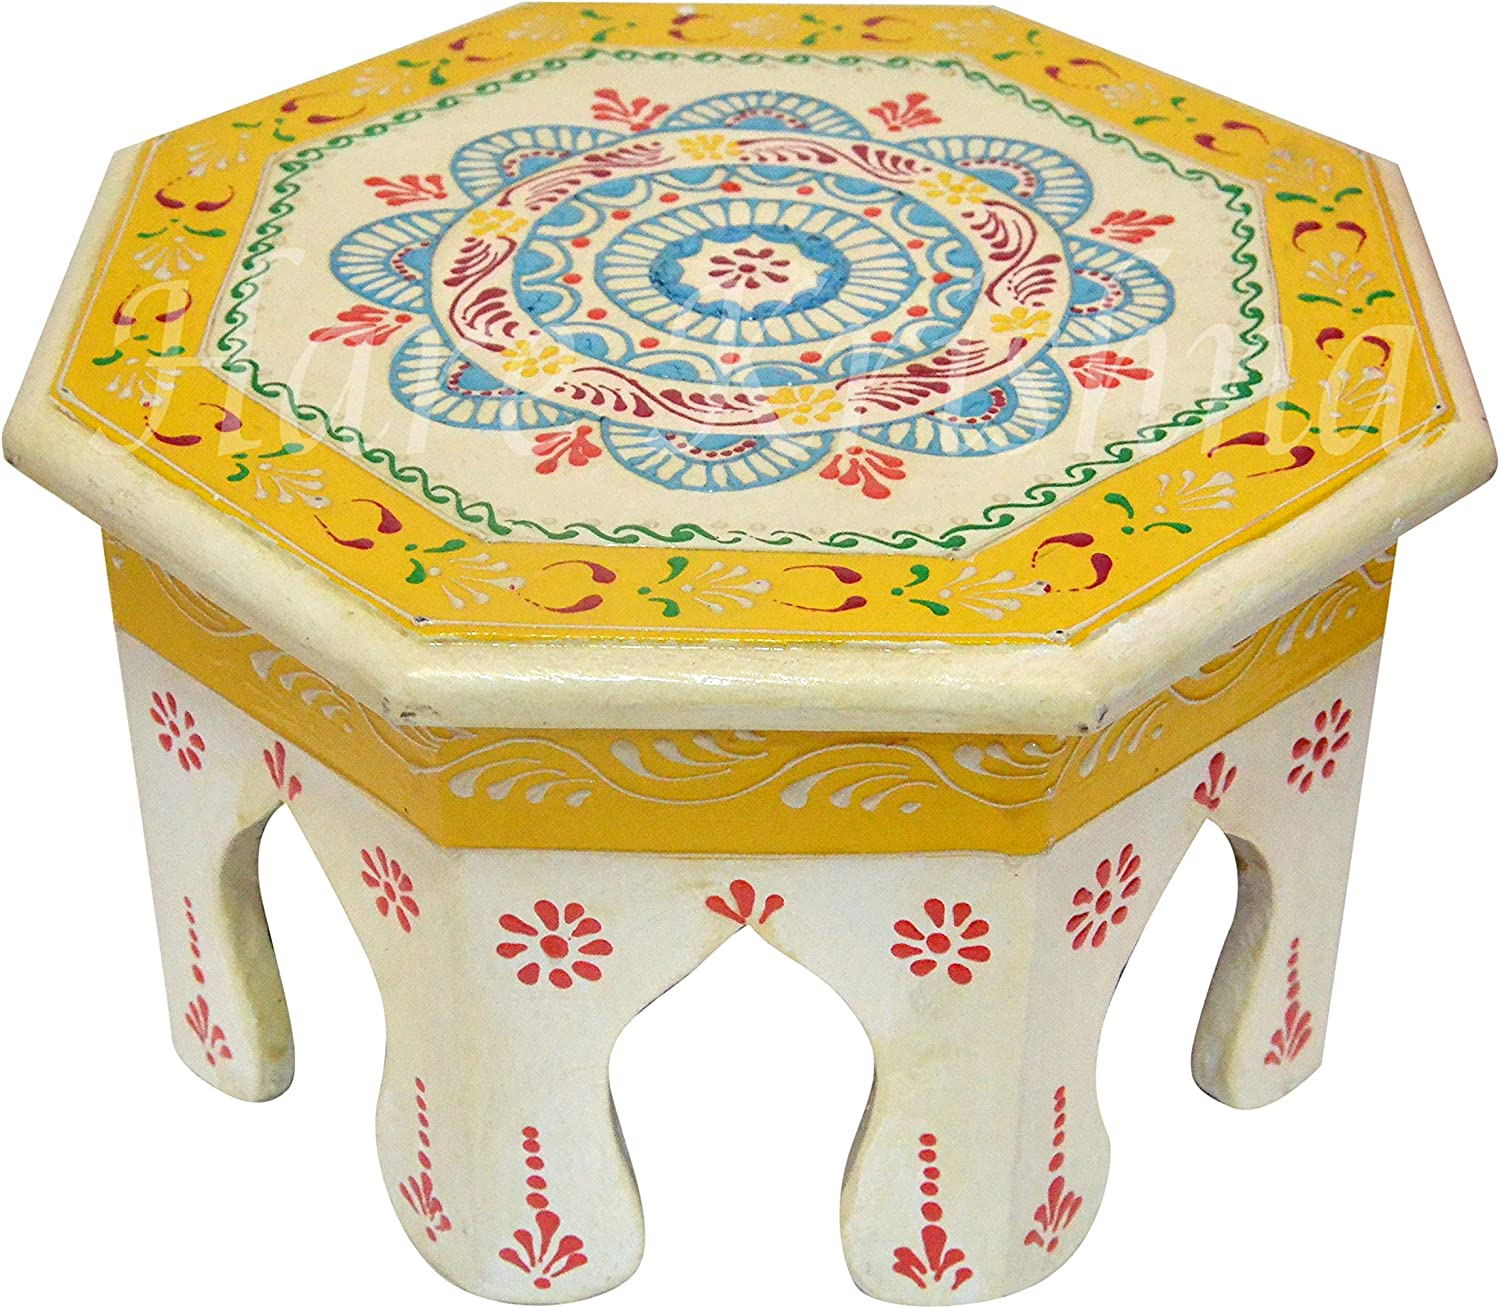 White Painted Footstool Wooden Furniture Low Wooden Side Table 10 x 10 x 6 Inches